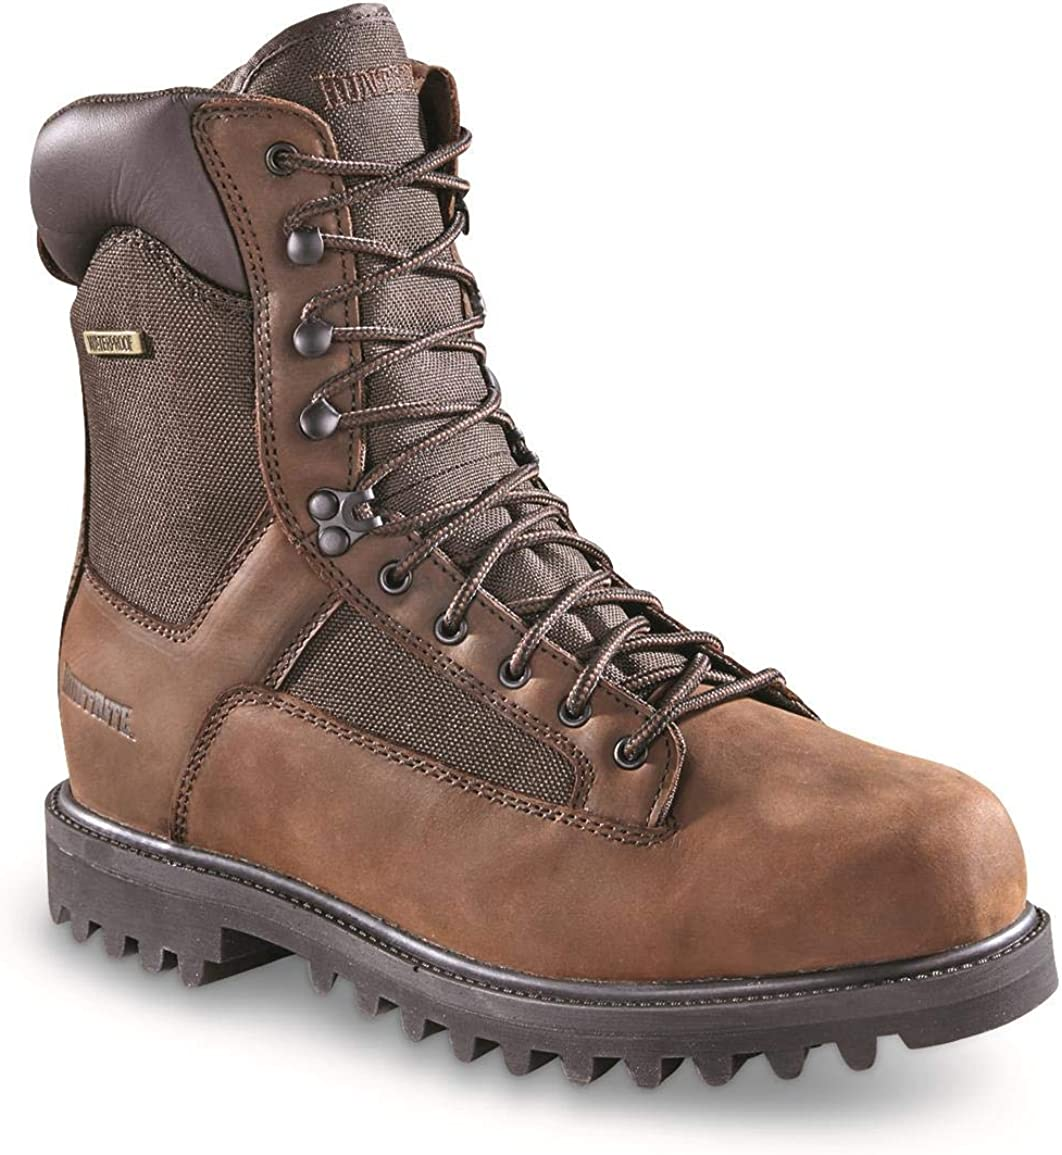 HUNRITE MENS INSULATED WATERPROOF HUNTING BOOTS